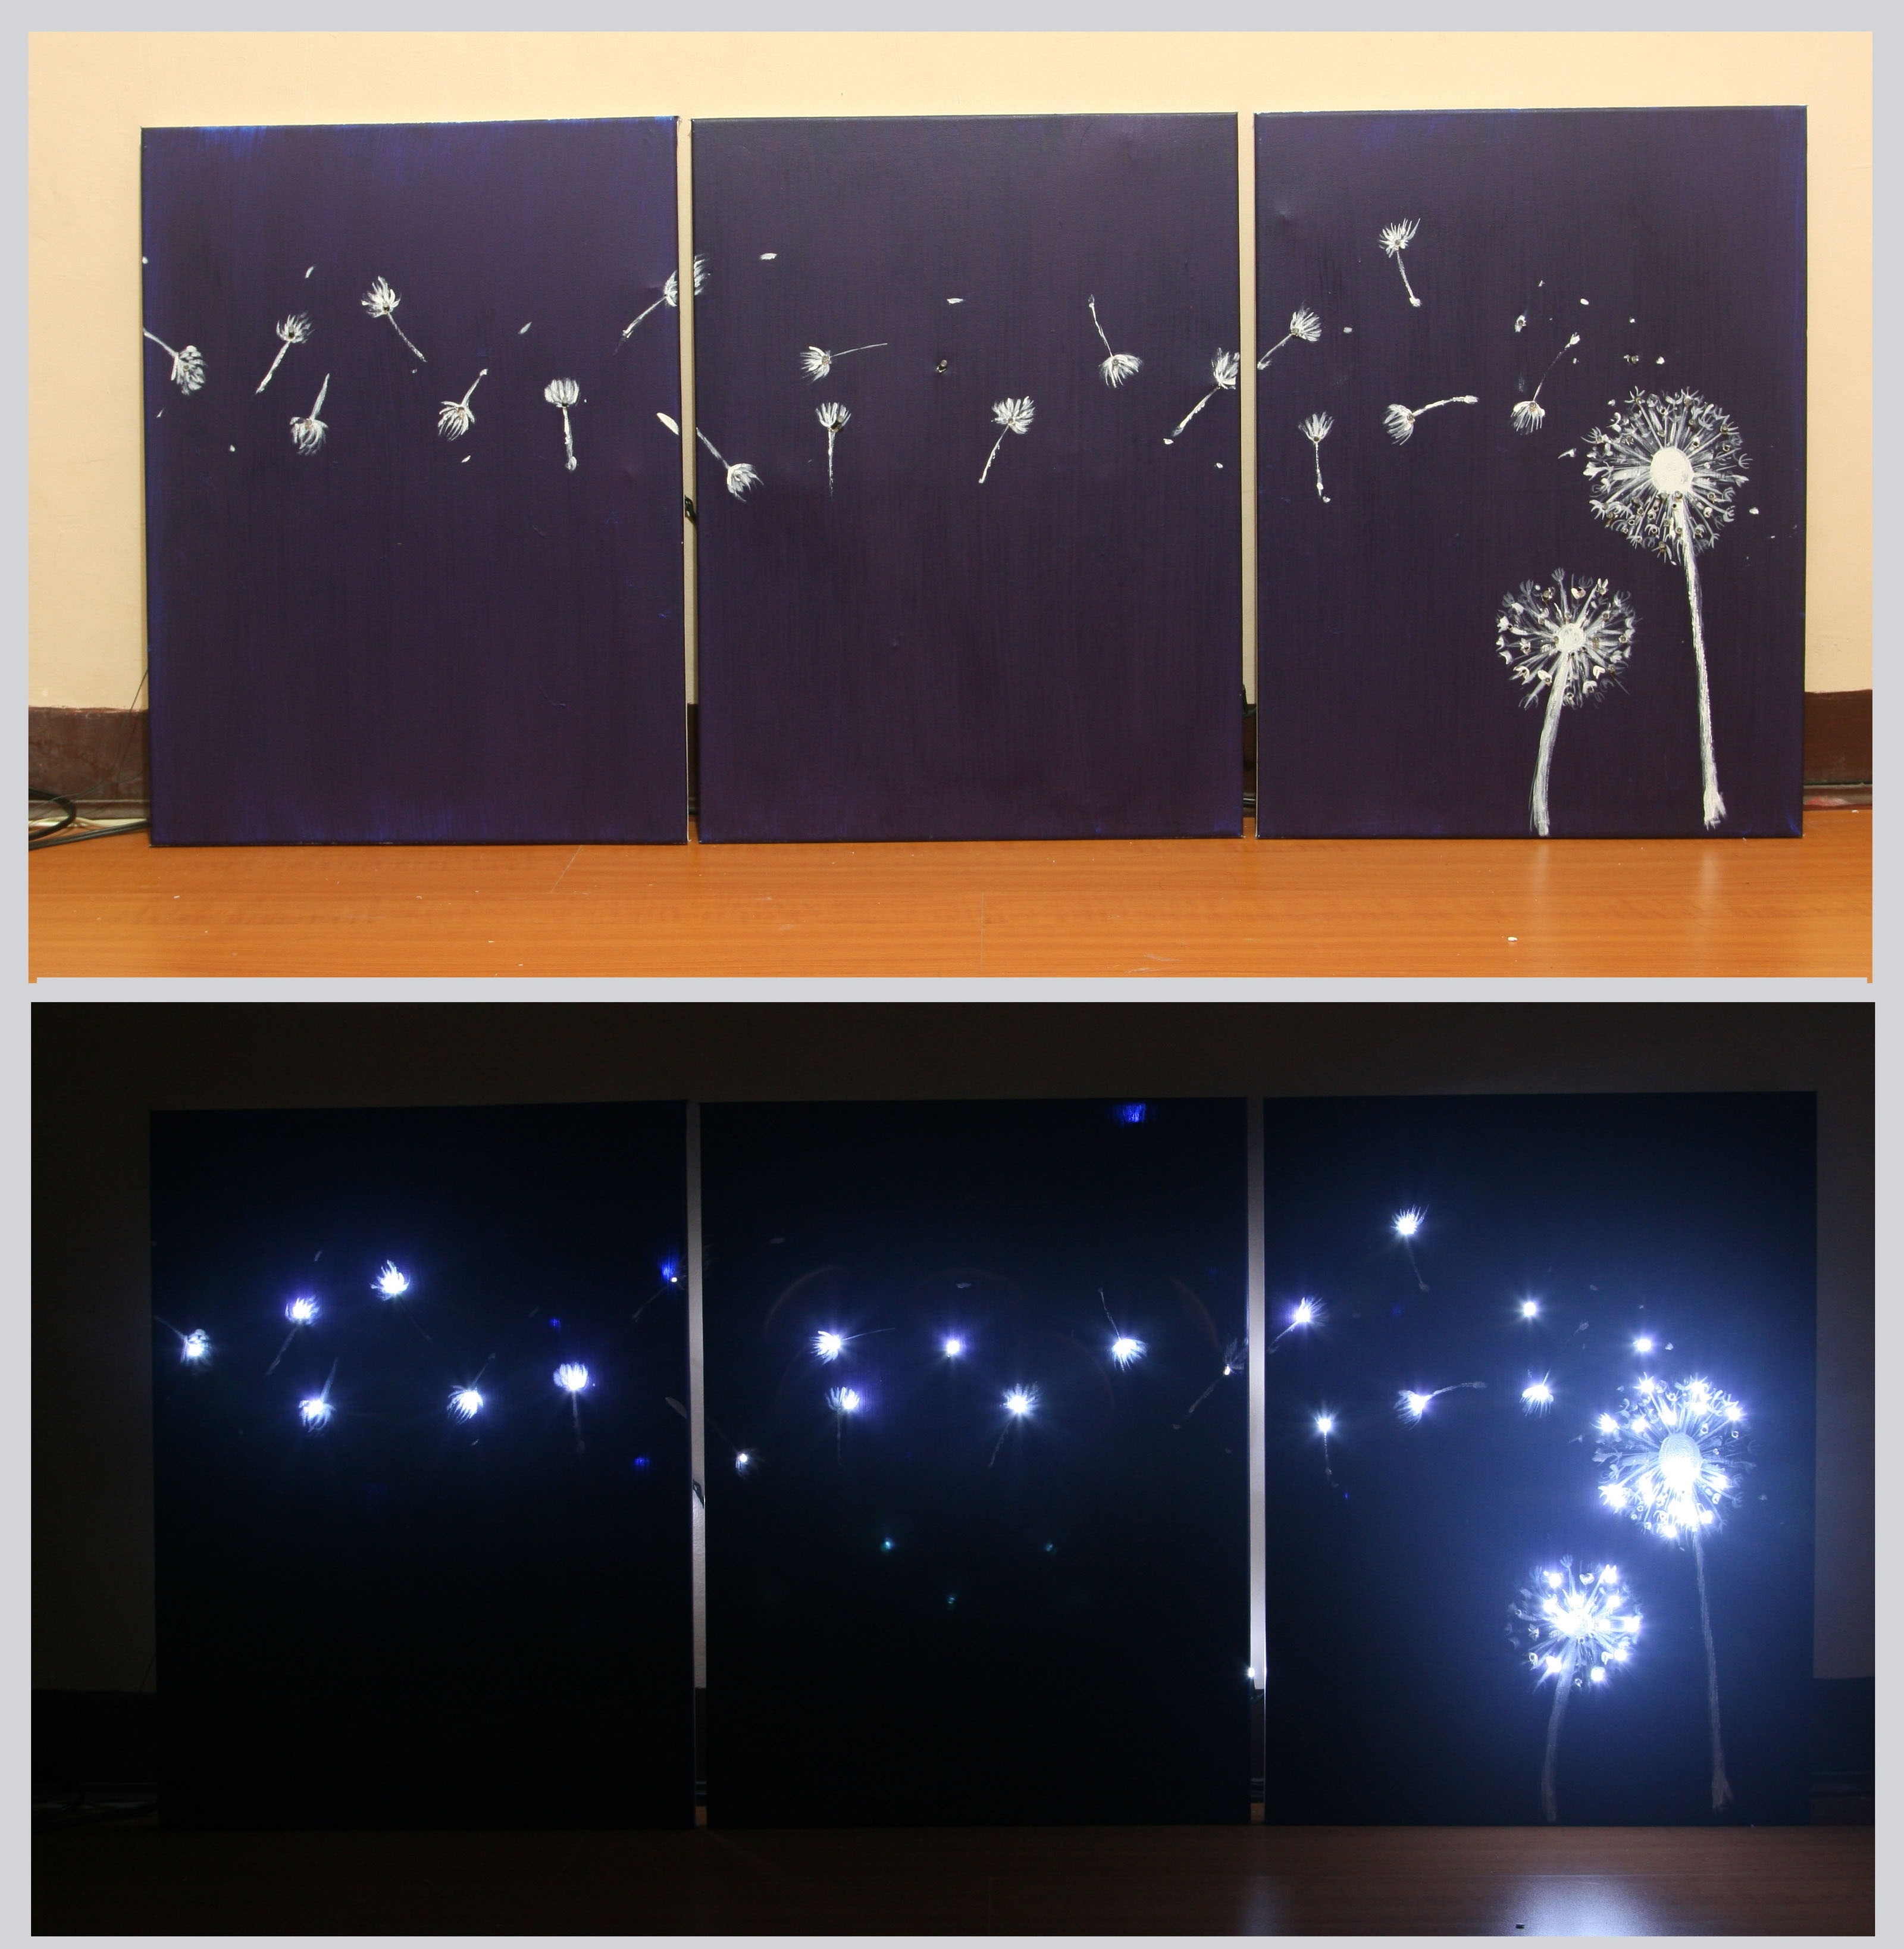 Preferred Lighted Wall Art Throughout 3 Ways To Design Three Panel, Light Up Dandelion Wall Art (View 12 of 15)